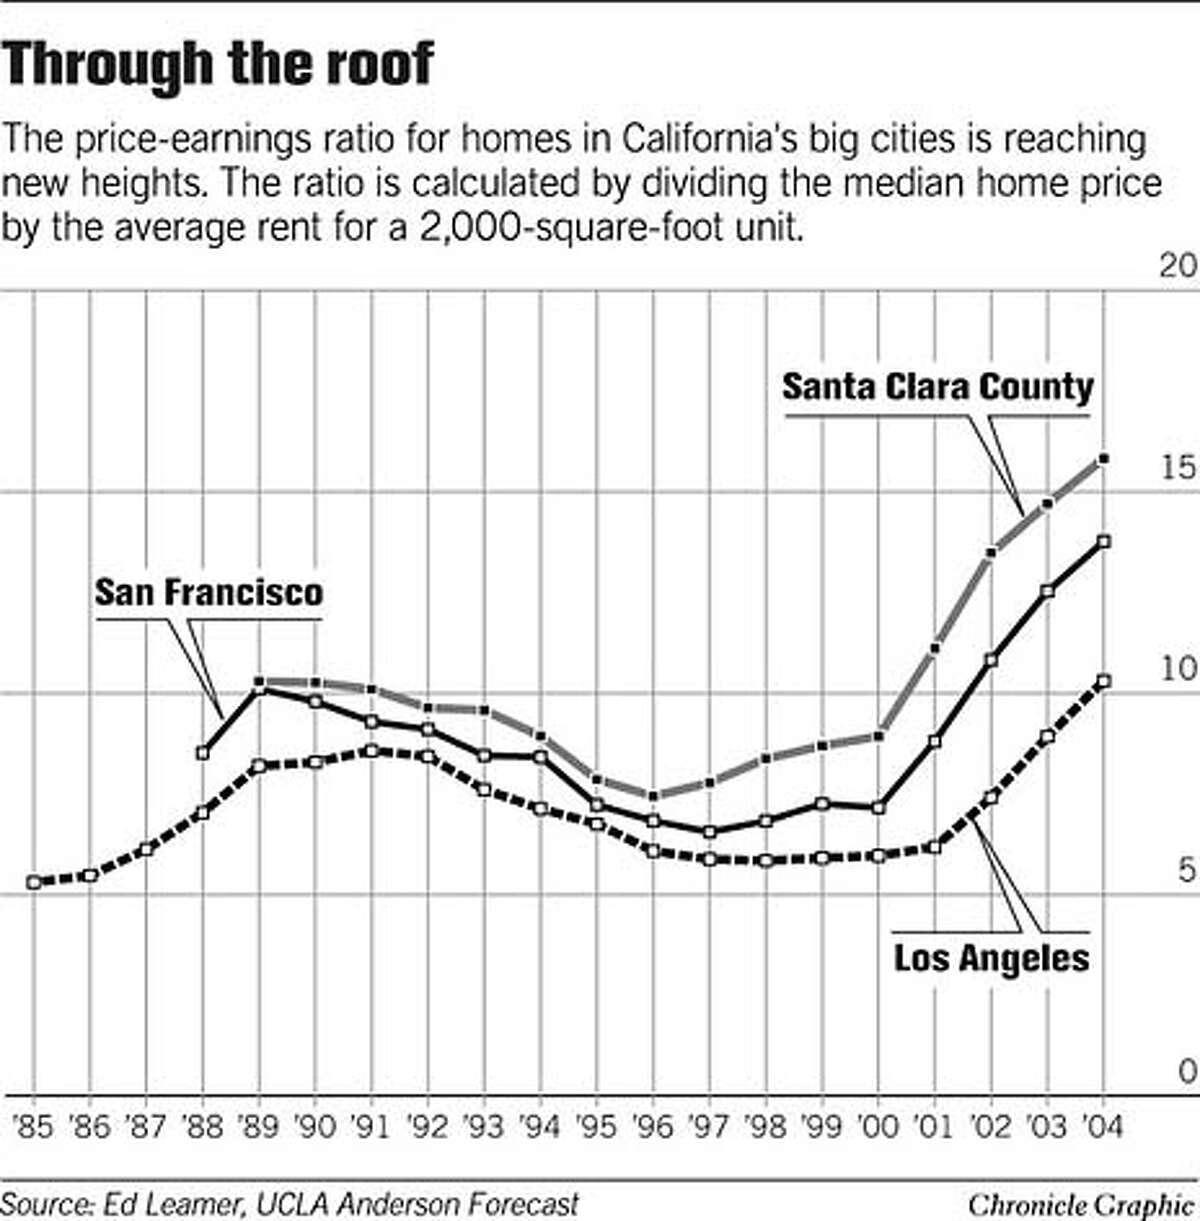 Price-Earnings Ratio for California Homes. Chronicle Graphic